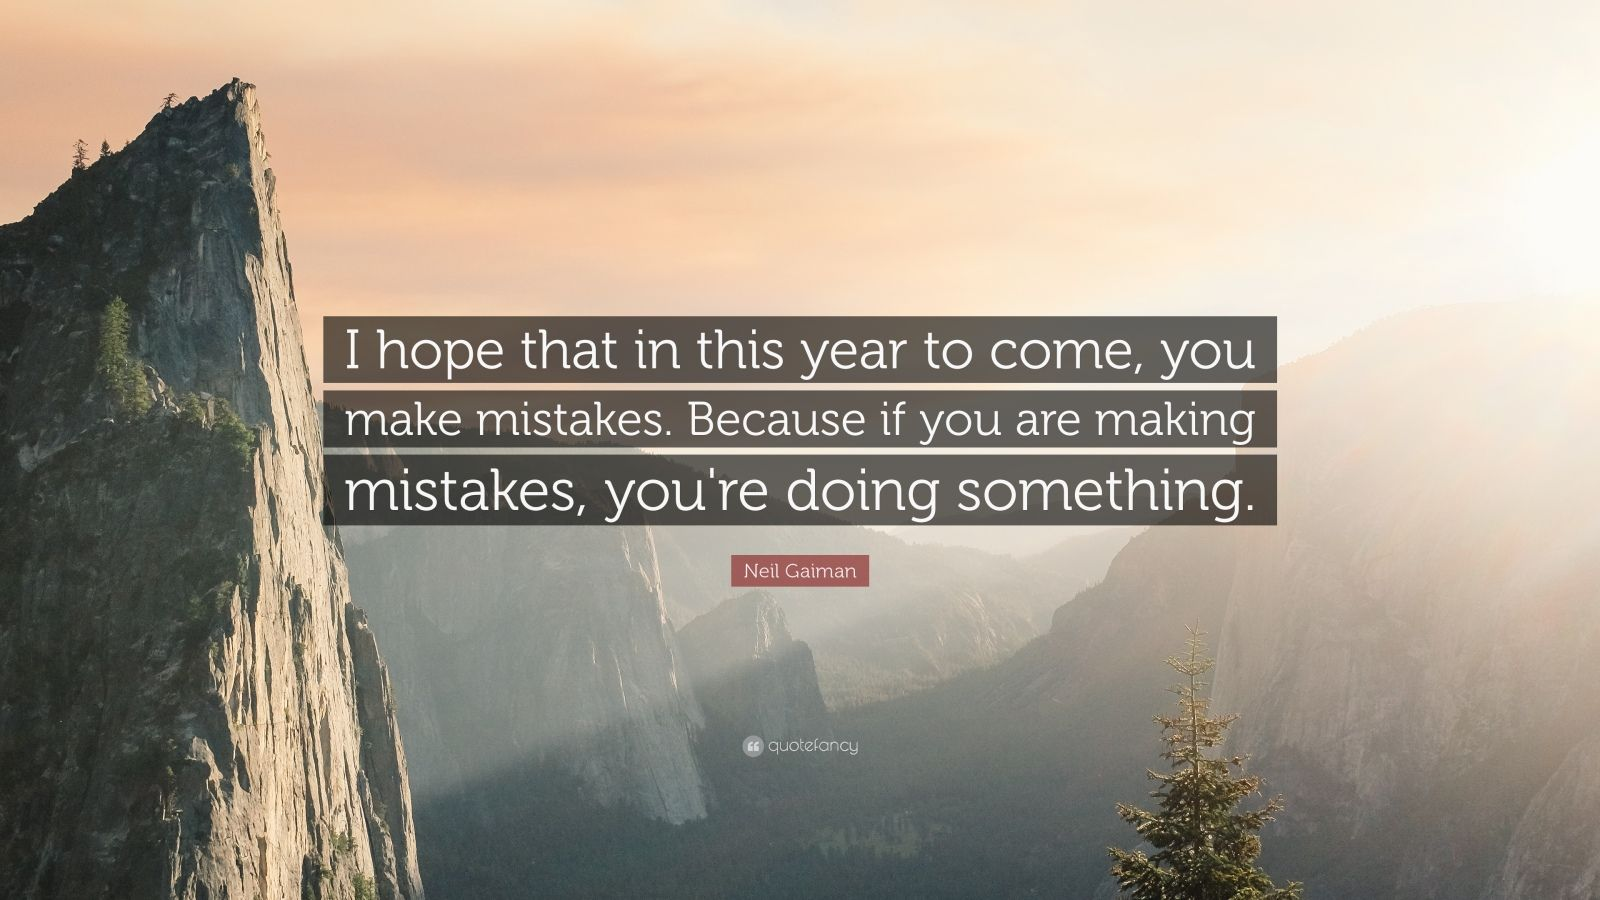 """Neil Gaiman Quote: """"I hope that in this year to come, you make mistakes. Because if you are making mistakes, you're doing something."""""""